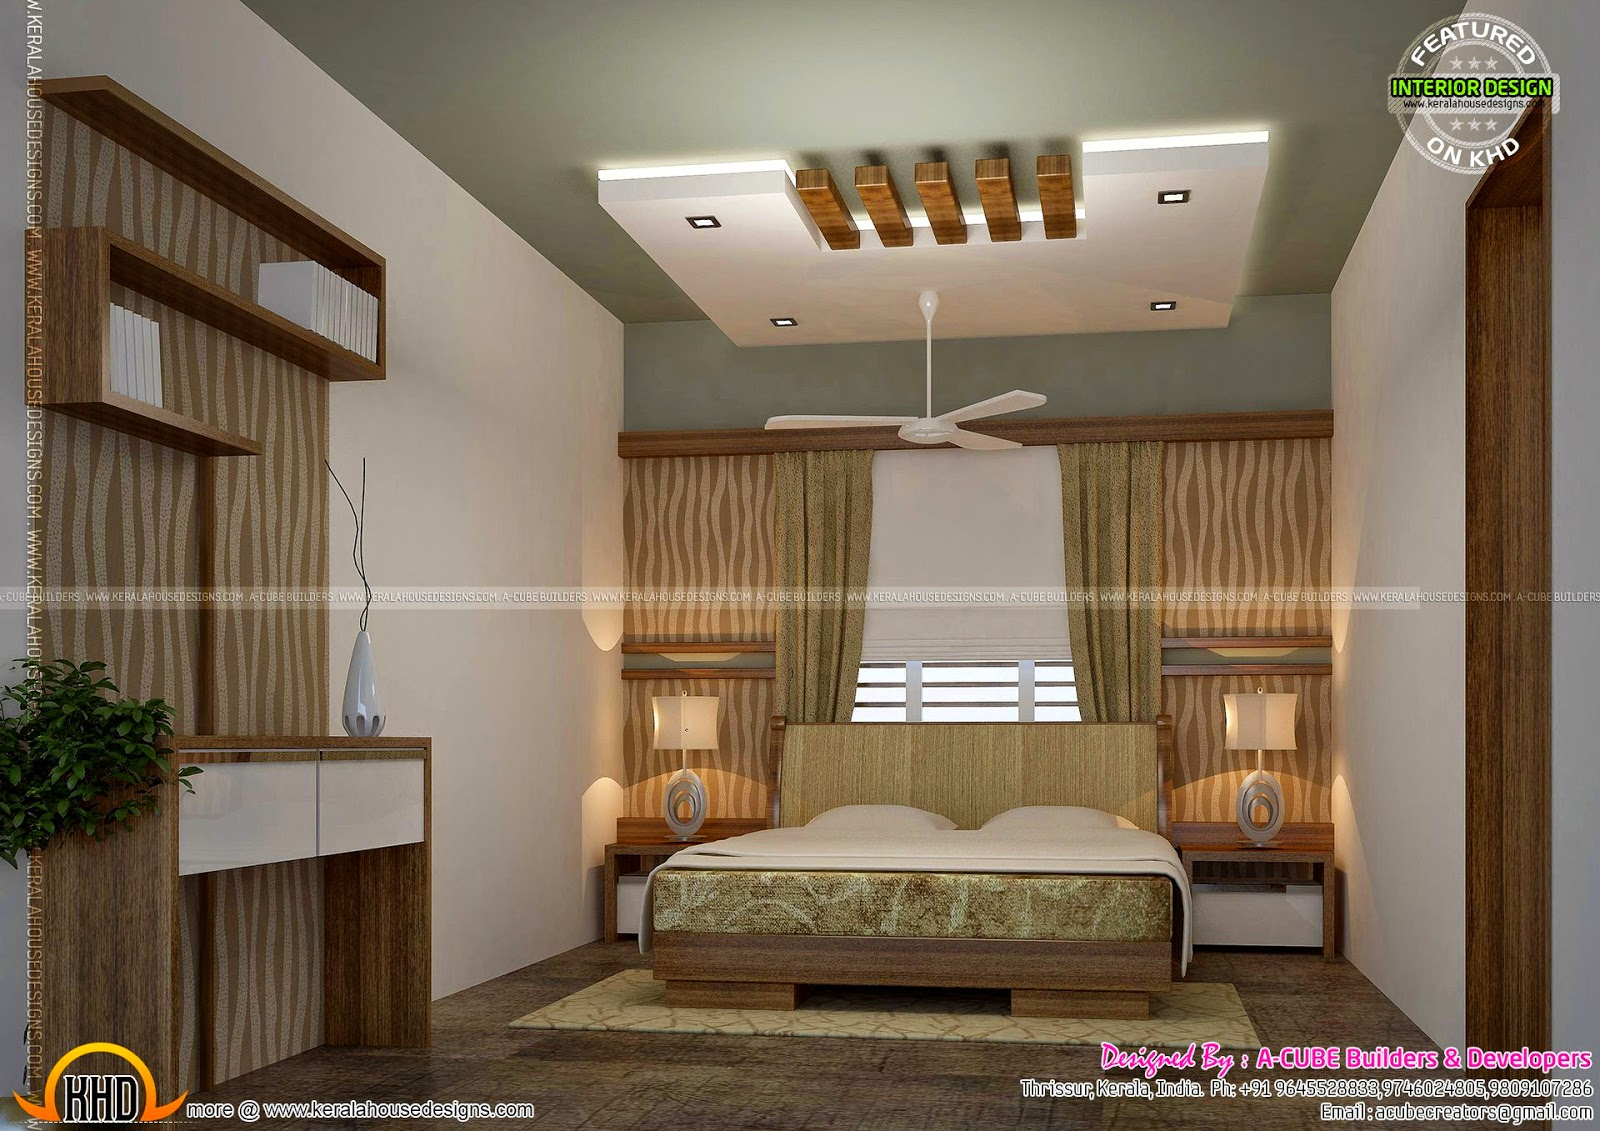 Kerala interior design ideas kerala home design and - Interior design for living room and bedroom ...